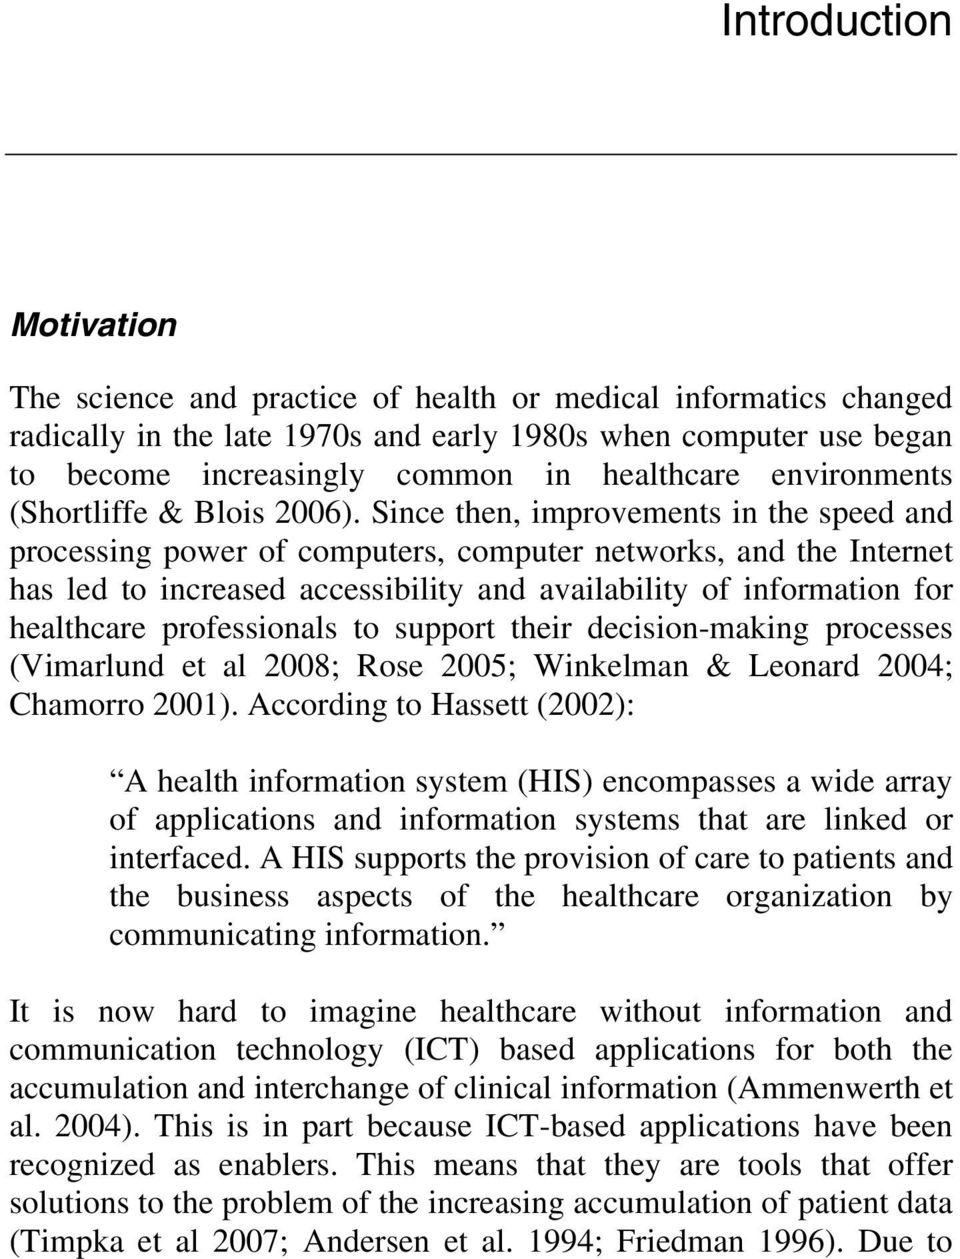 Since then, improvements in the speed and processing power of computers, computer networks, and the Internet has led to increased accessibility and availability of information for healthcare